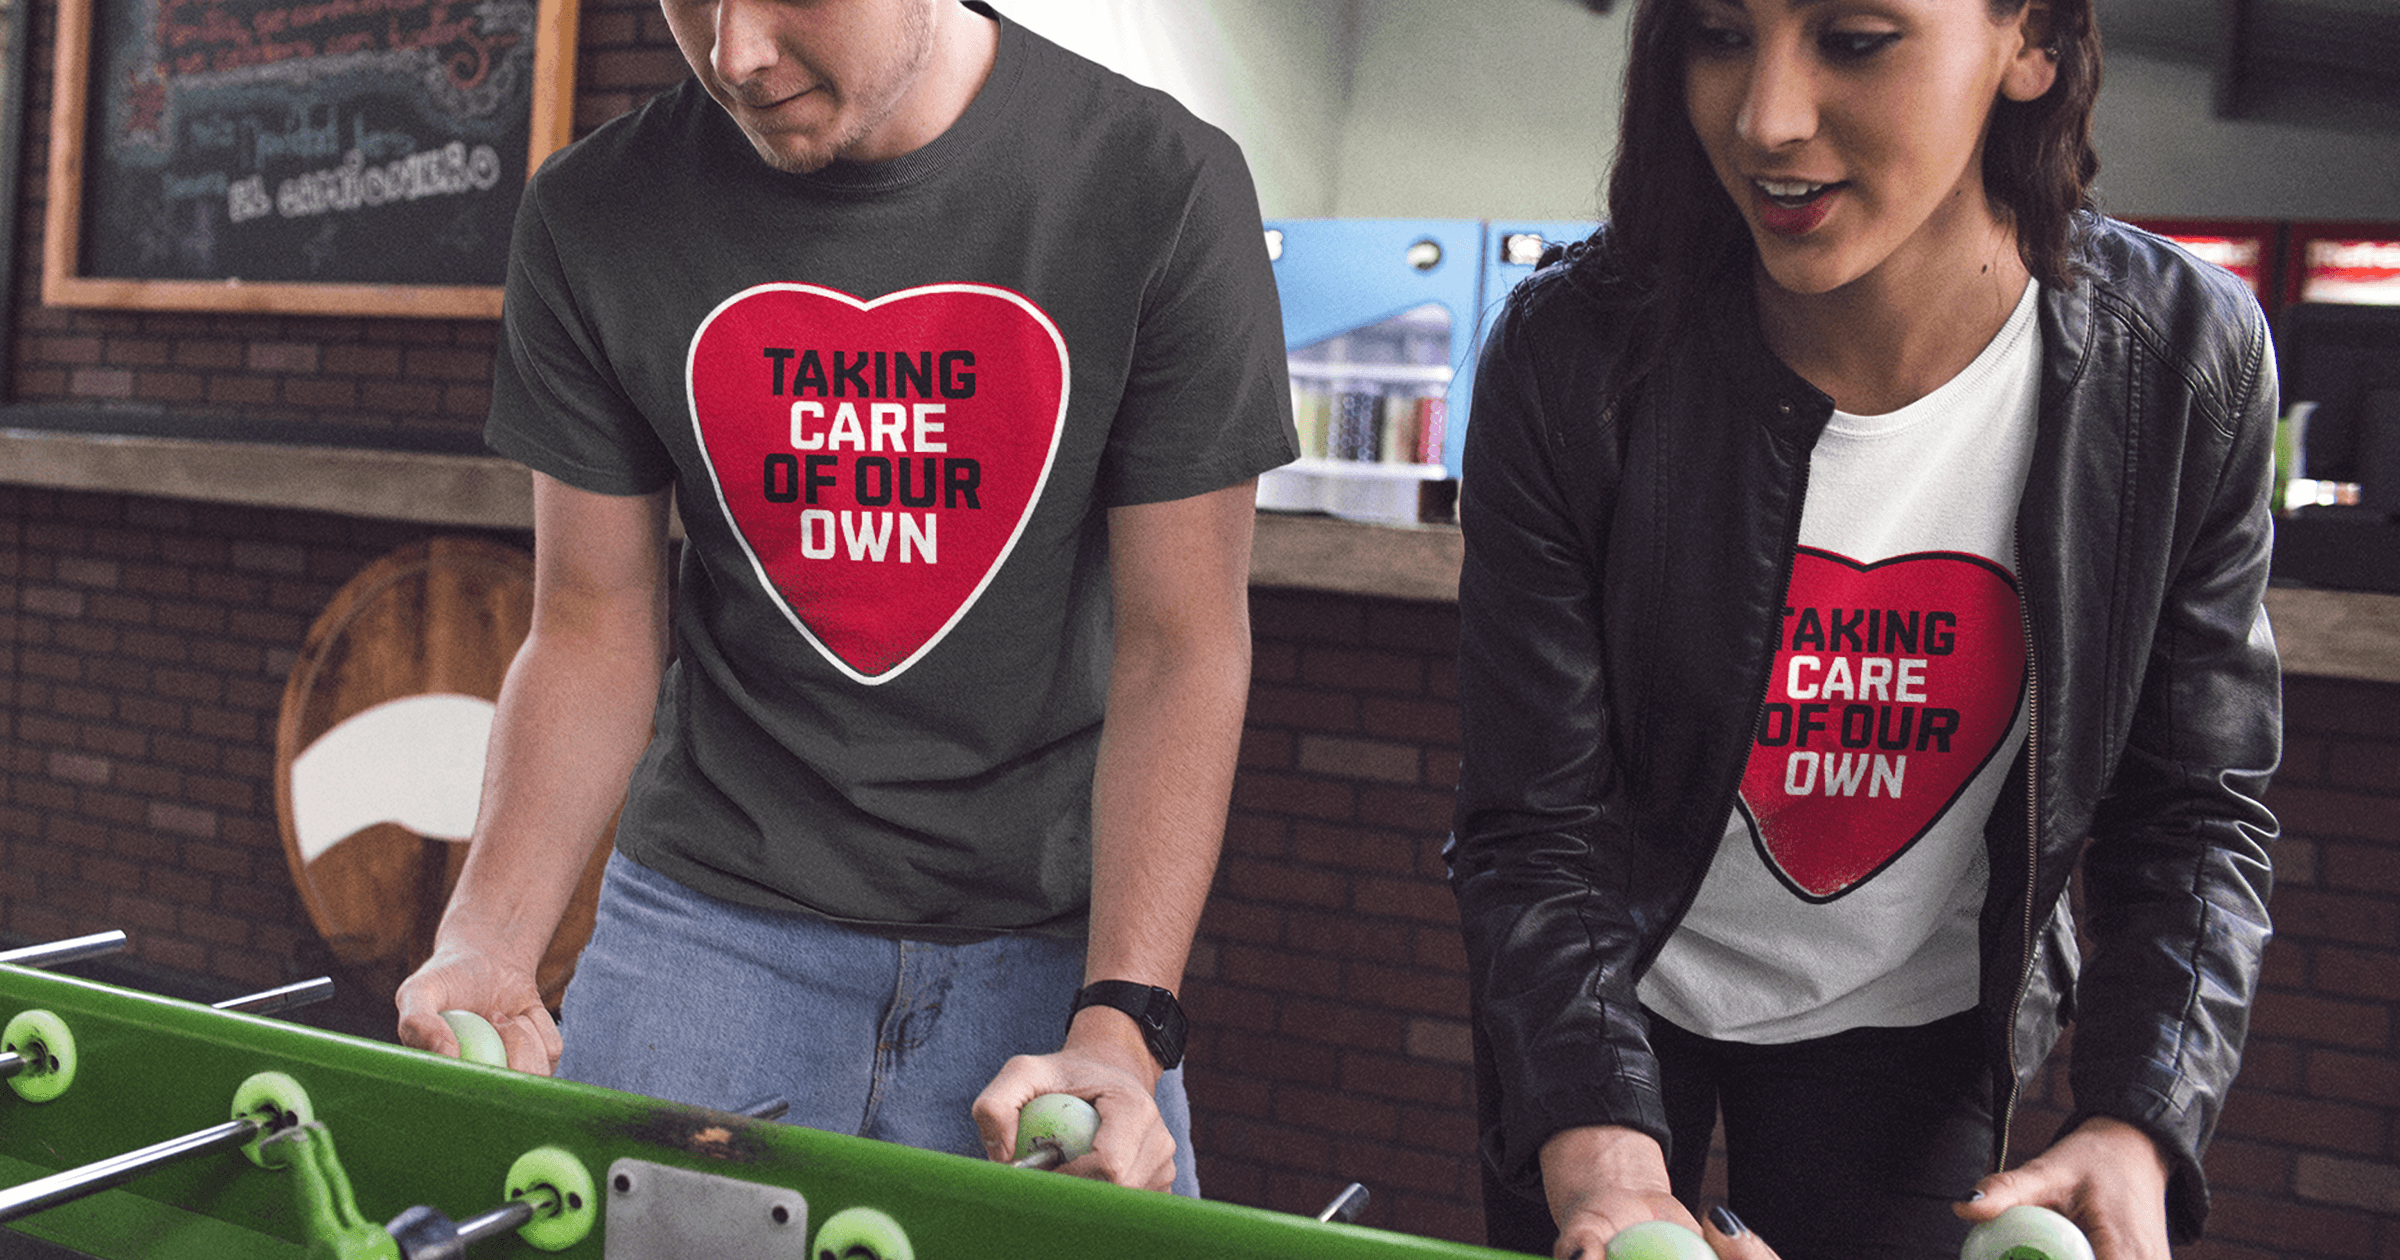 Live Nation 'Taking Care Of Our Own' t-shirt